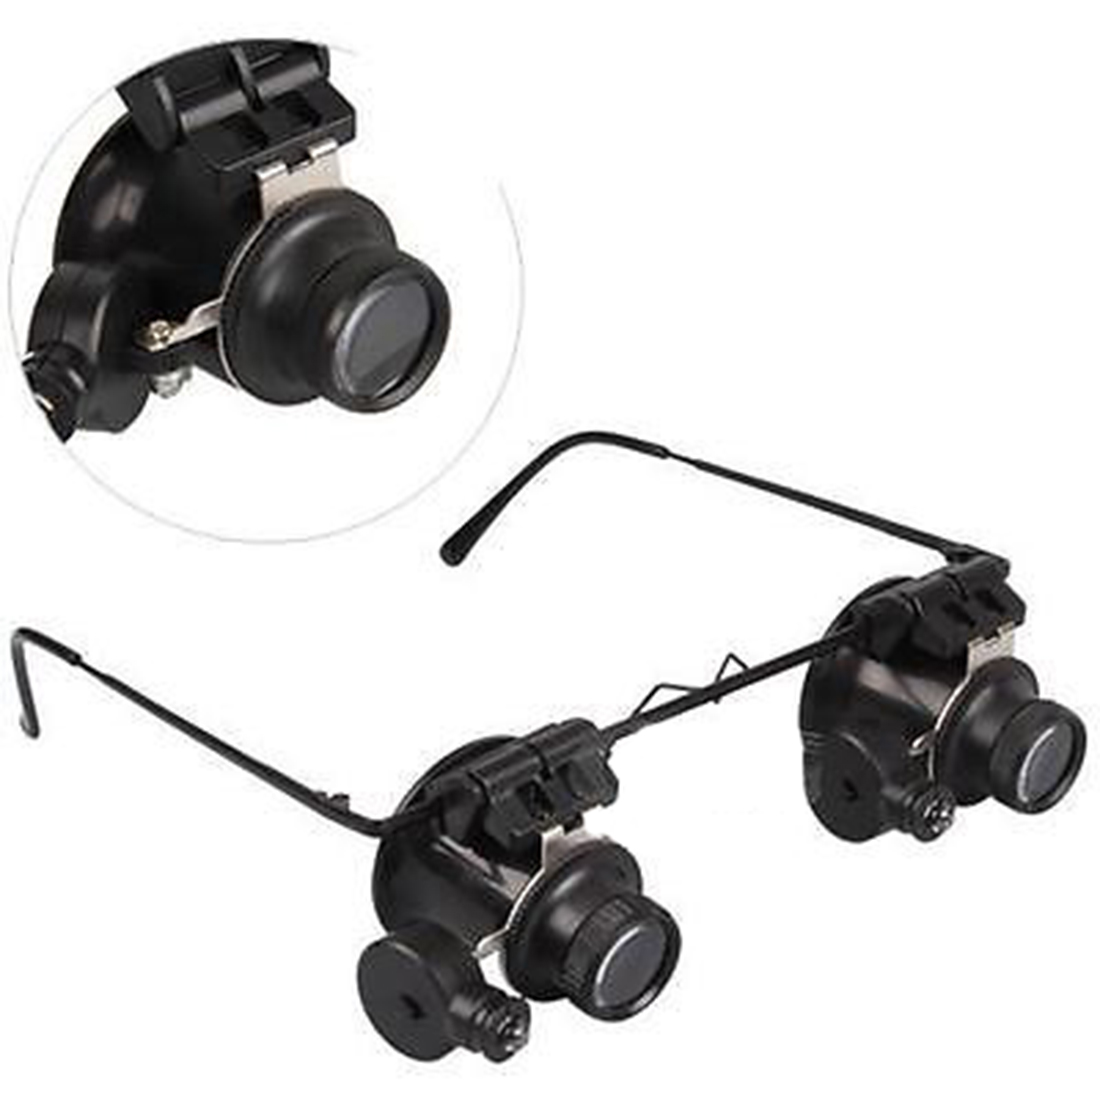 Double Eye Repair Magnifier Glasses 20X LED Mini Loupe Lens Magnifying Glas With Light Watch Microscope Measurement Tools magnifier 10x 15x 20x 25x led double eye glasses loupe lens jeweler watch repair measurement with 8 lens